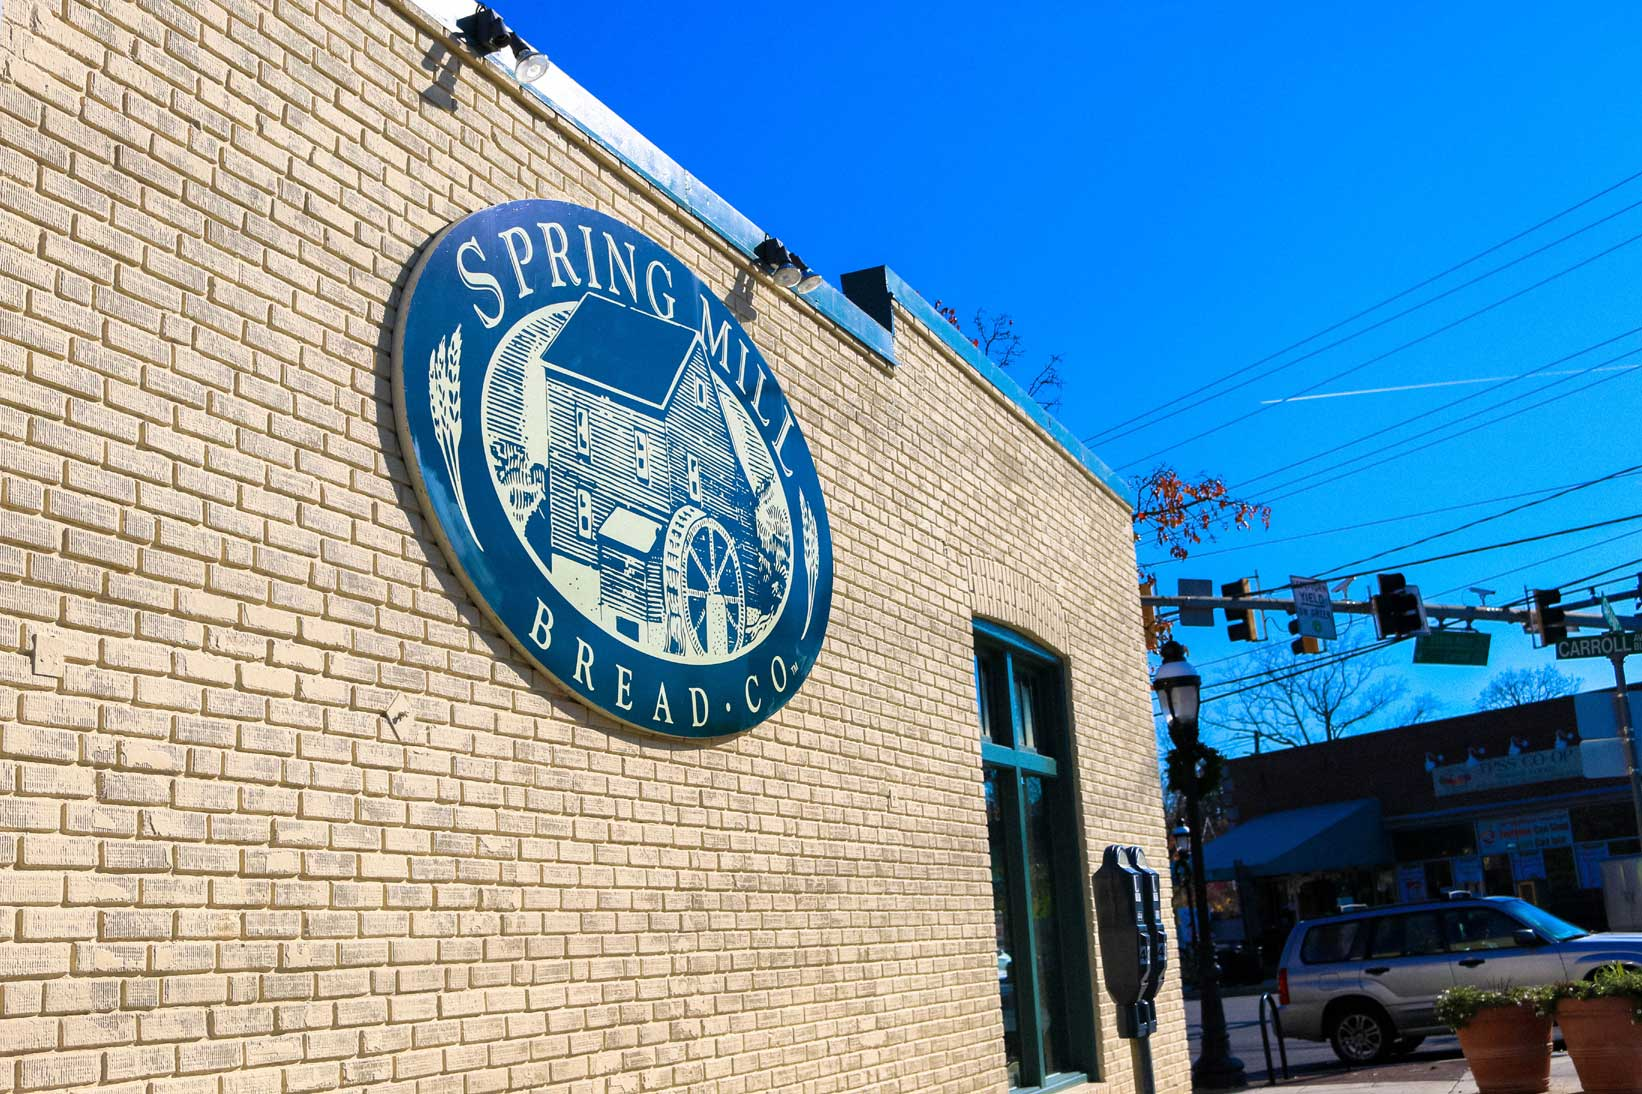 Spring Mill Bread Company in Takoma Park, MD